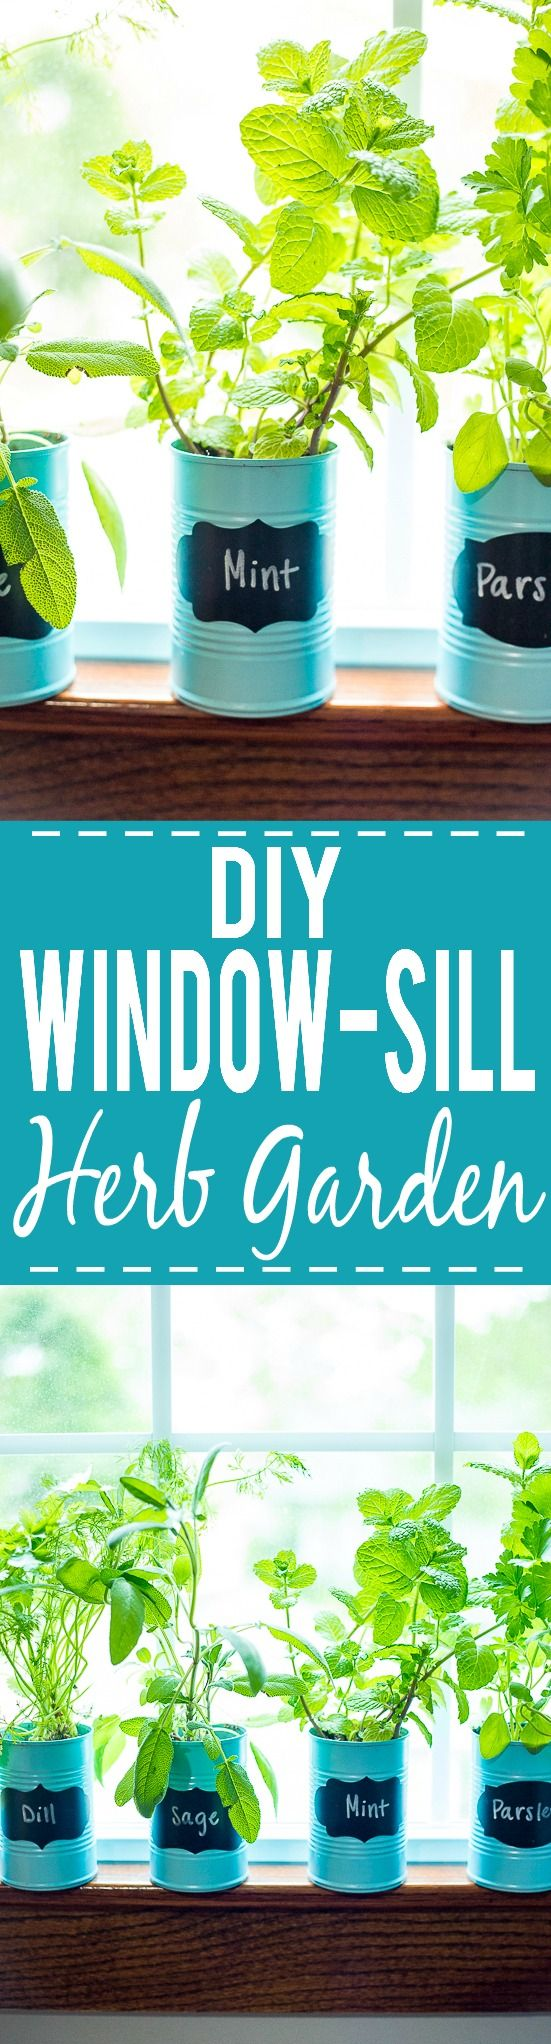 Indoor Window Sill Herb Planter Part - 40: How To Make A DIY Indoor Window Sill Herb Garden - Save Money, Prevent Food